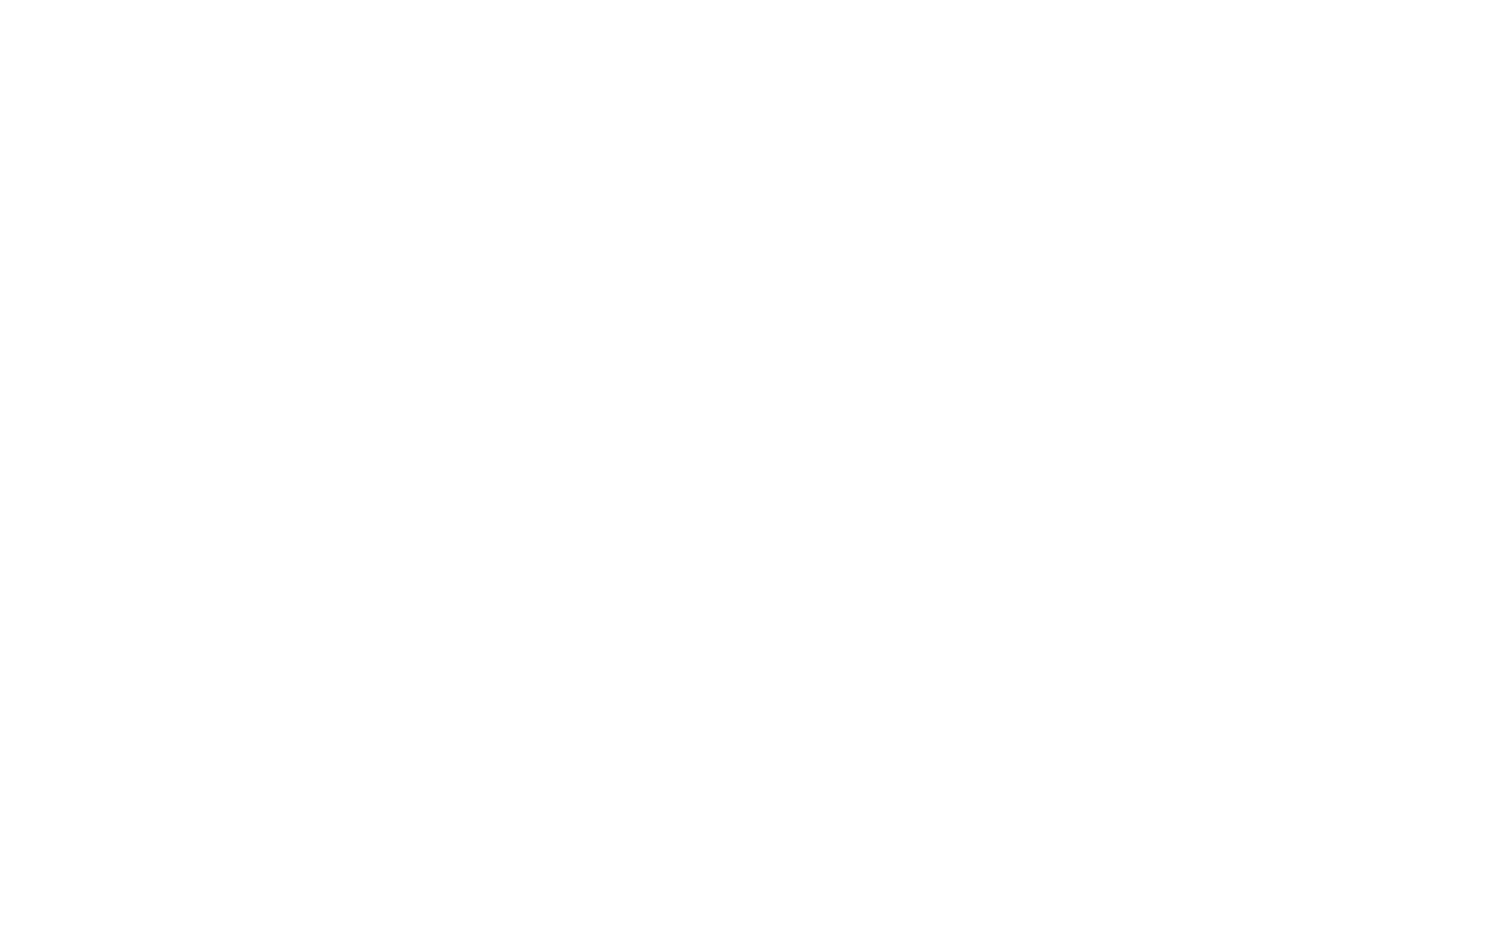 Jason Penland Photography